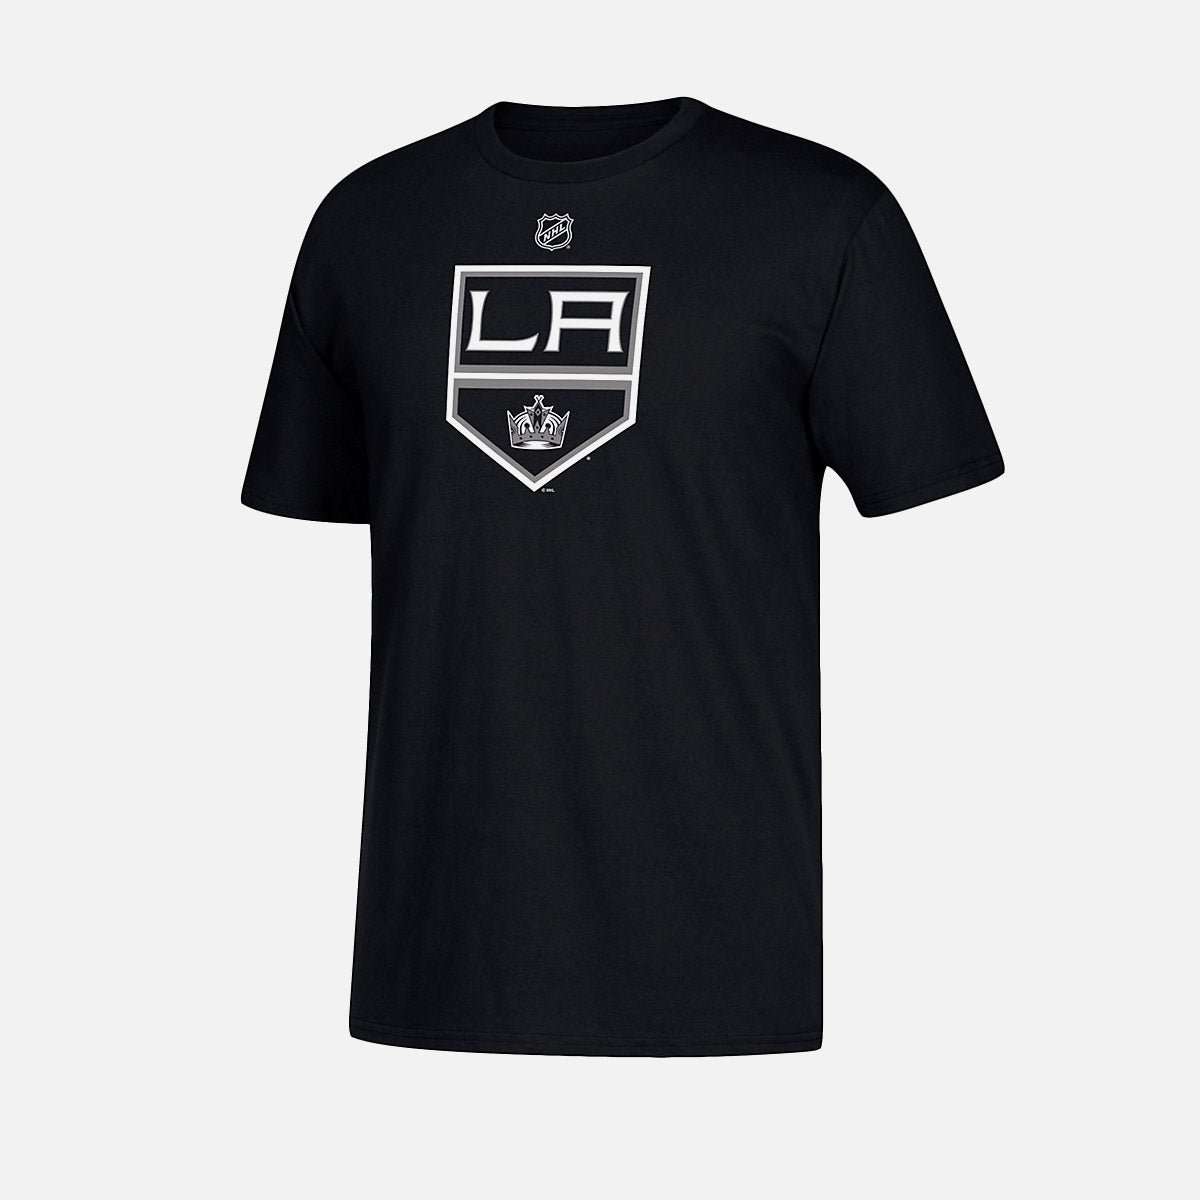 Los Angeles Kings Adidas Go-To Drew Doughty Shirt